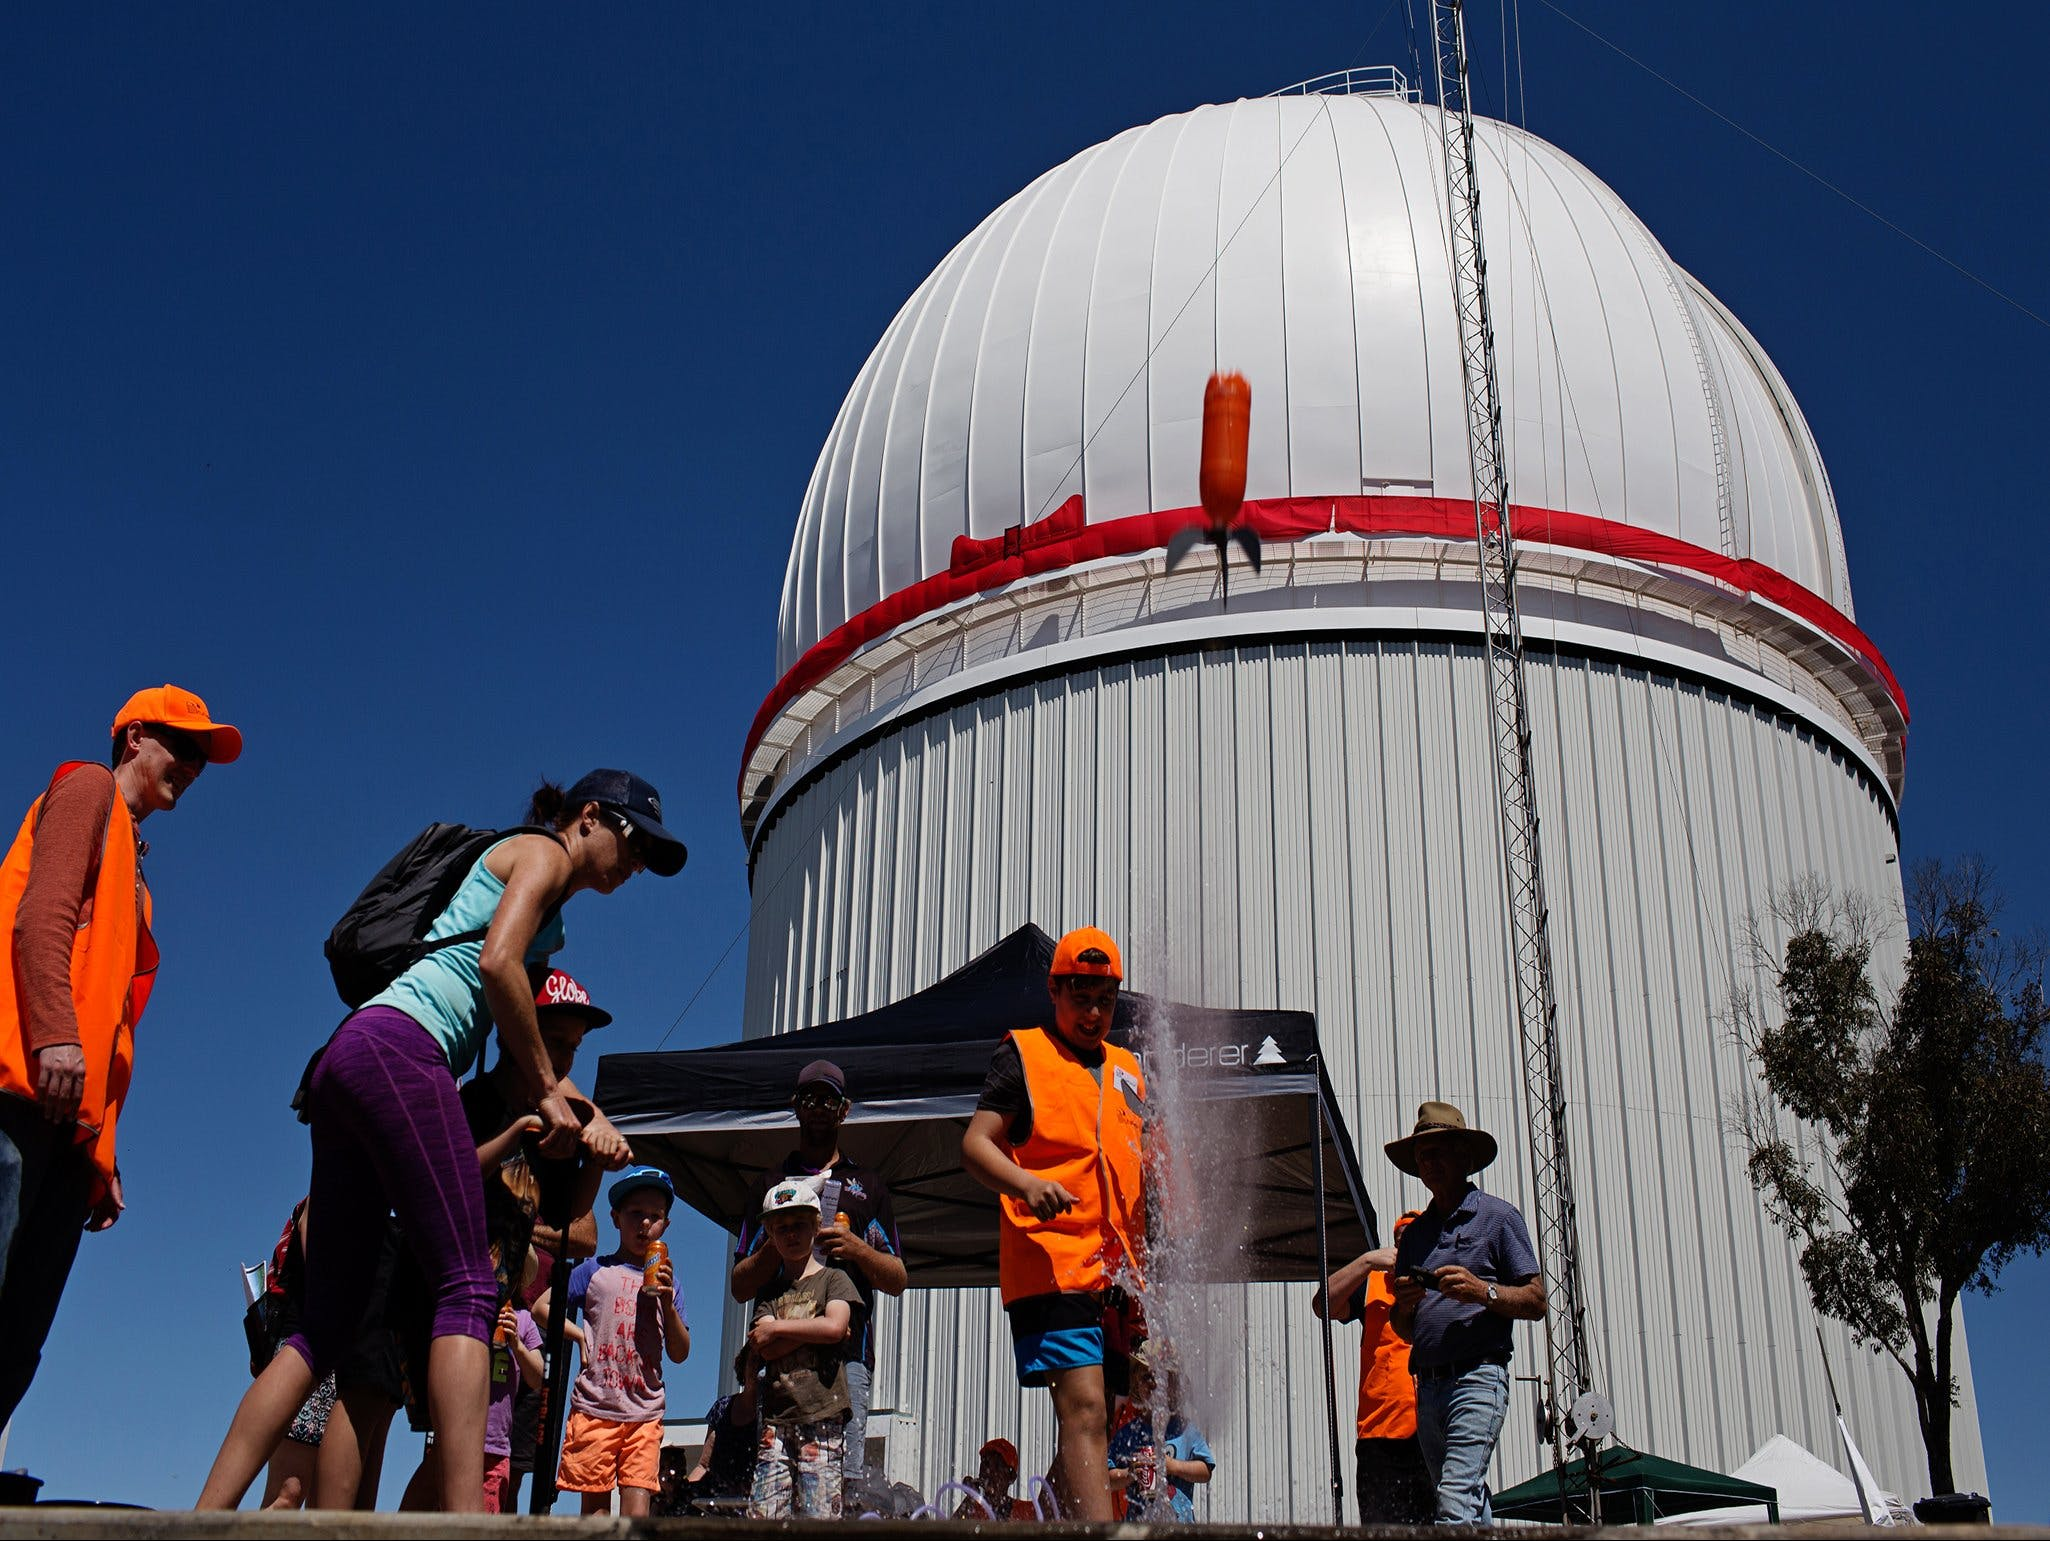 Siding Spring Observatory Open Day - Cancelled due to COVID 19 - Whitsundays Tourism